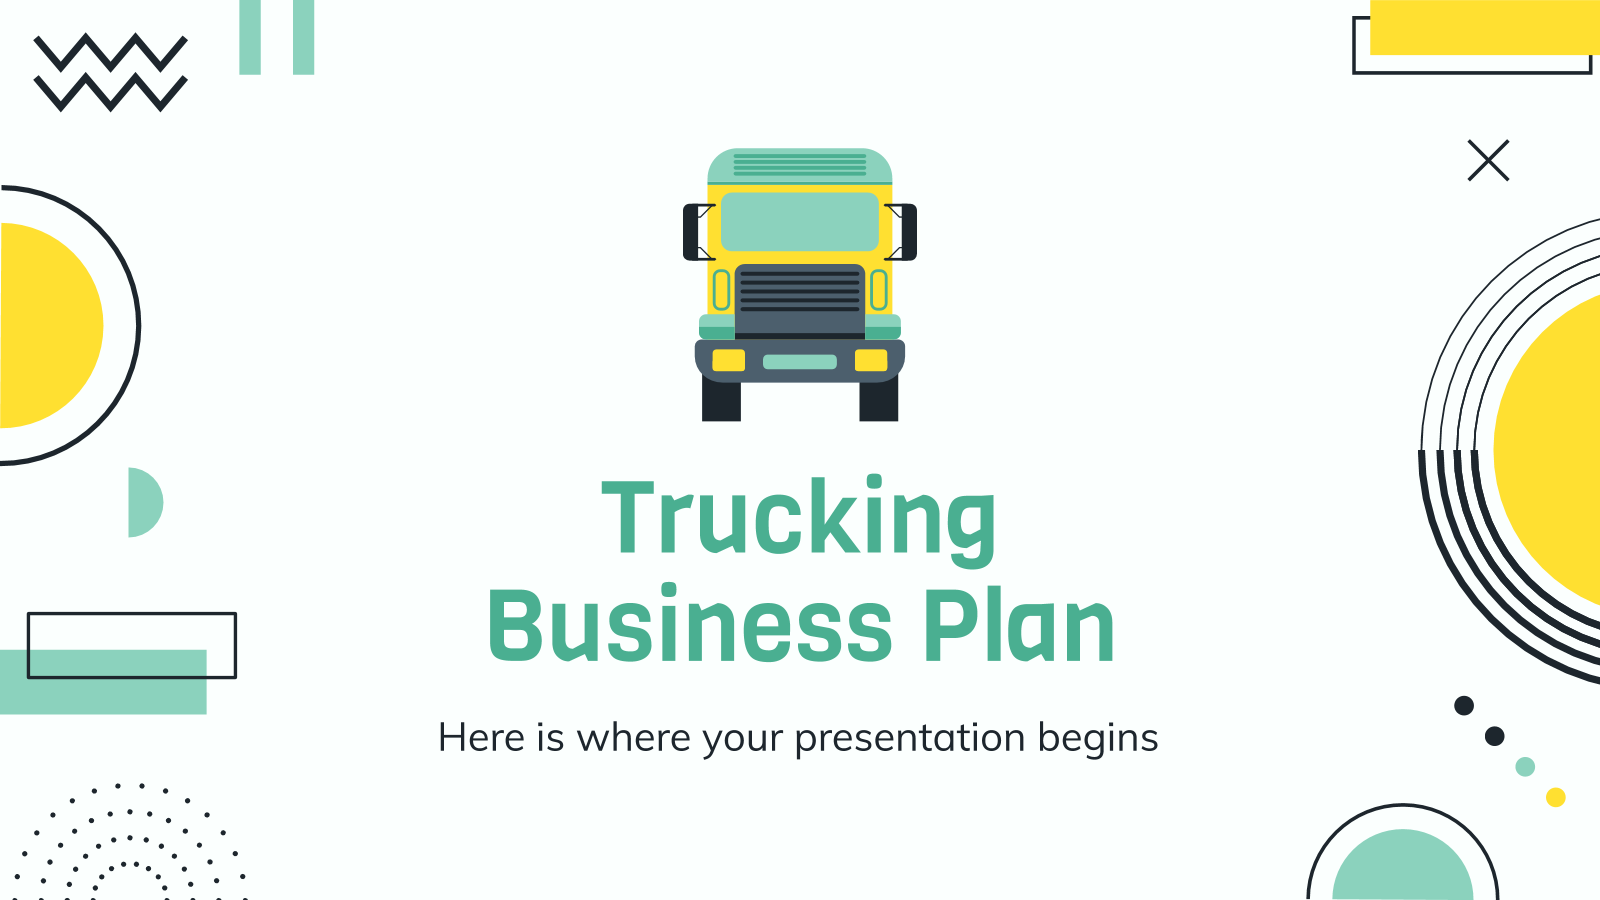 Trucking Business Plan presentation template